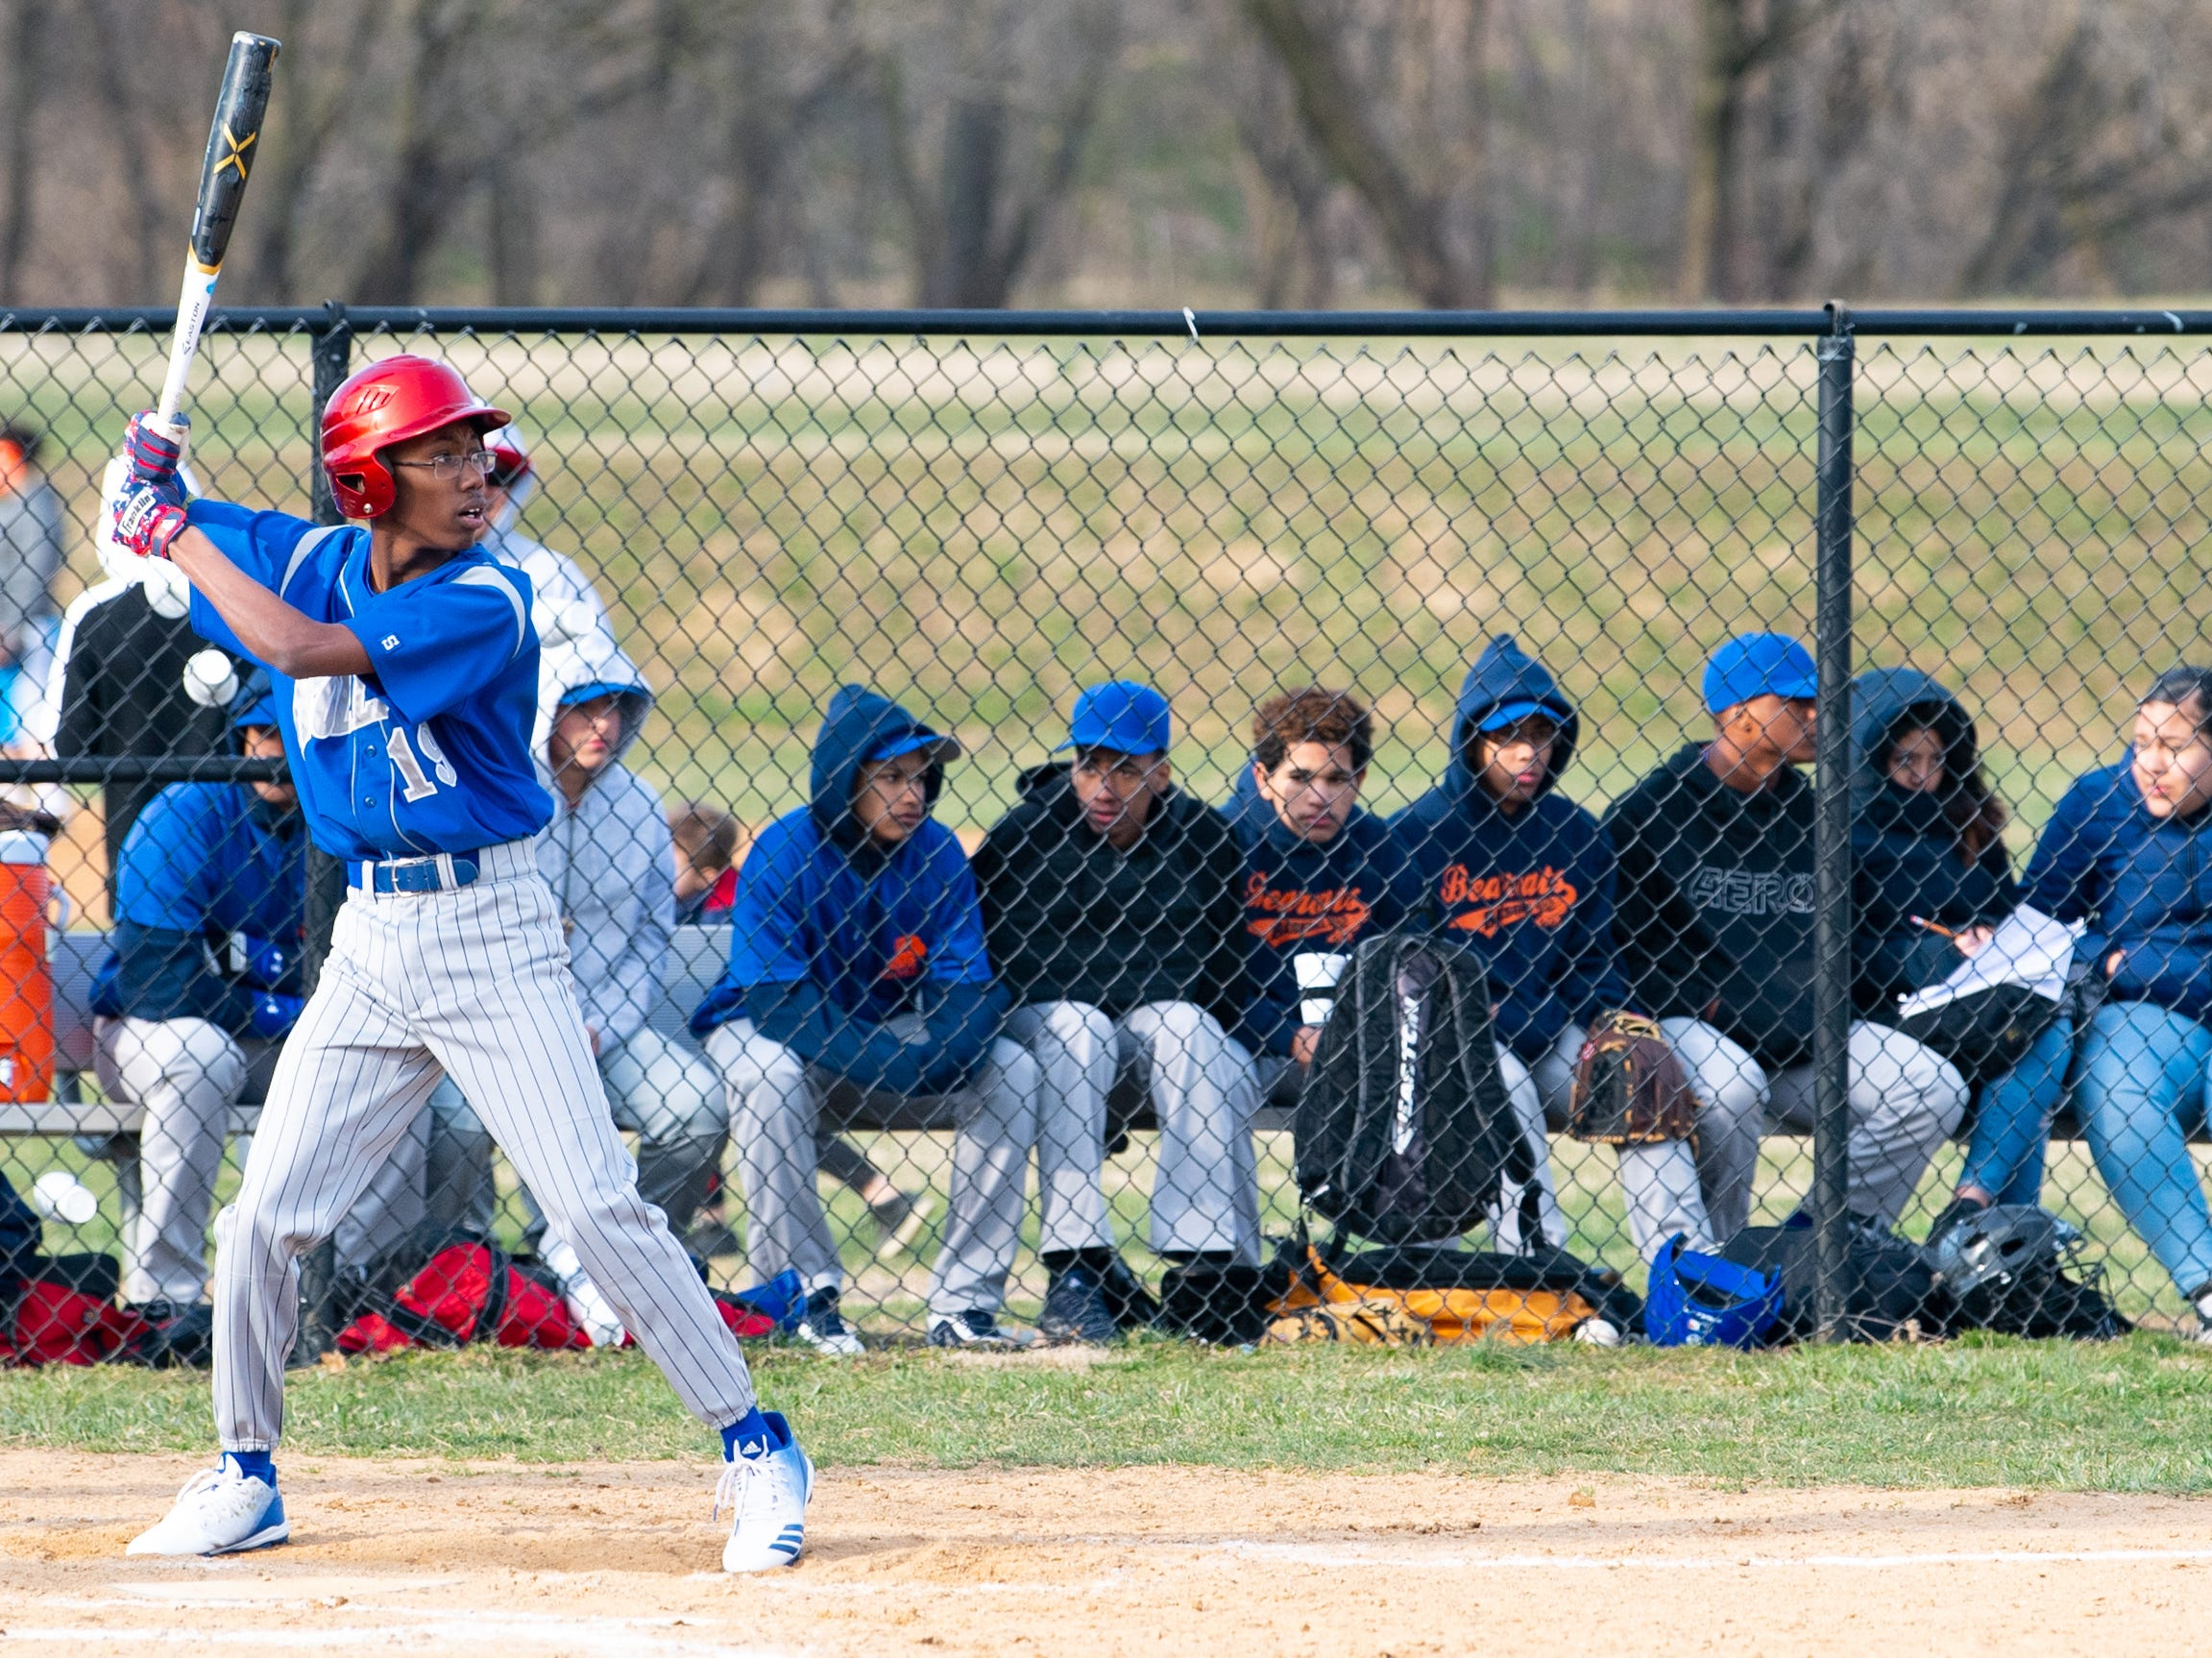 York High's bench watches Steel High at bat during the scrimmage, March 20, 2019 at Small Athletic Field.